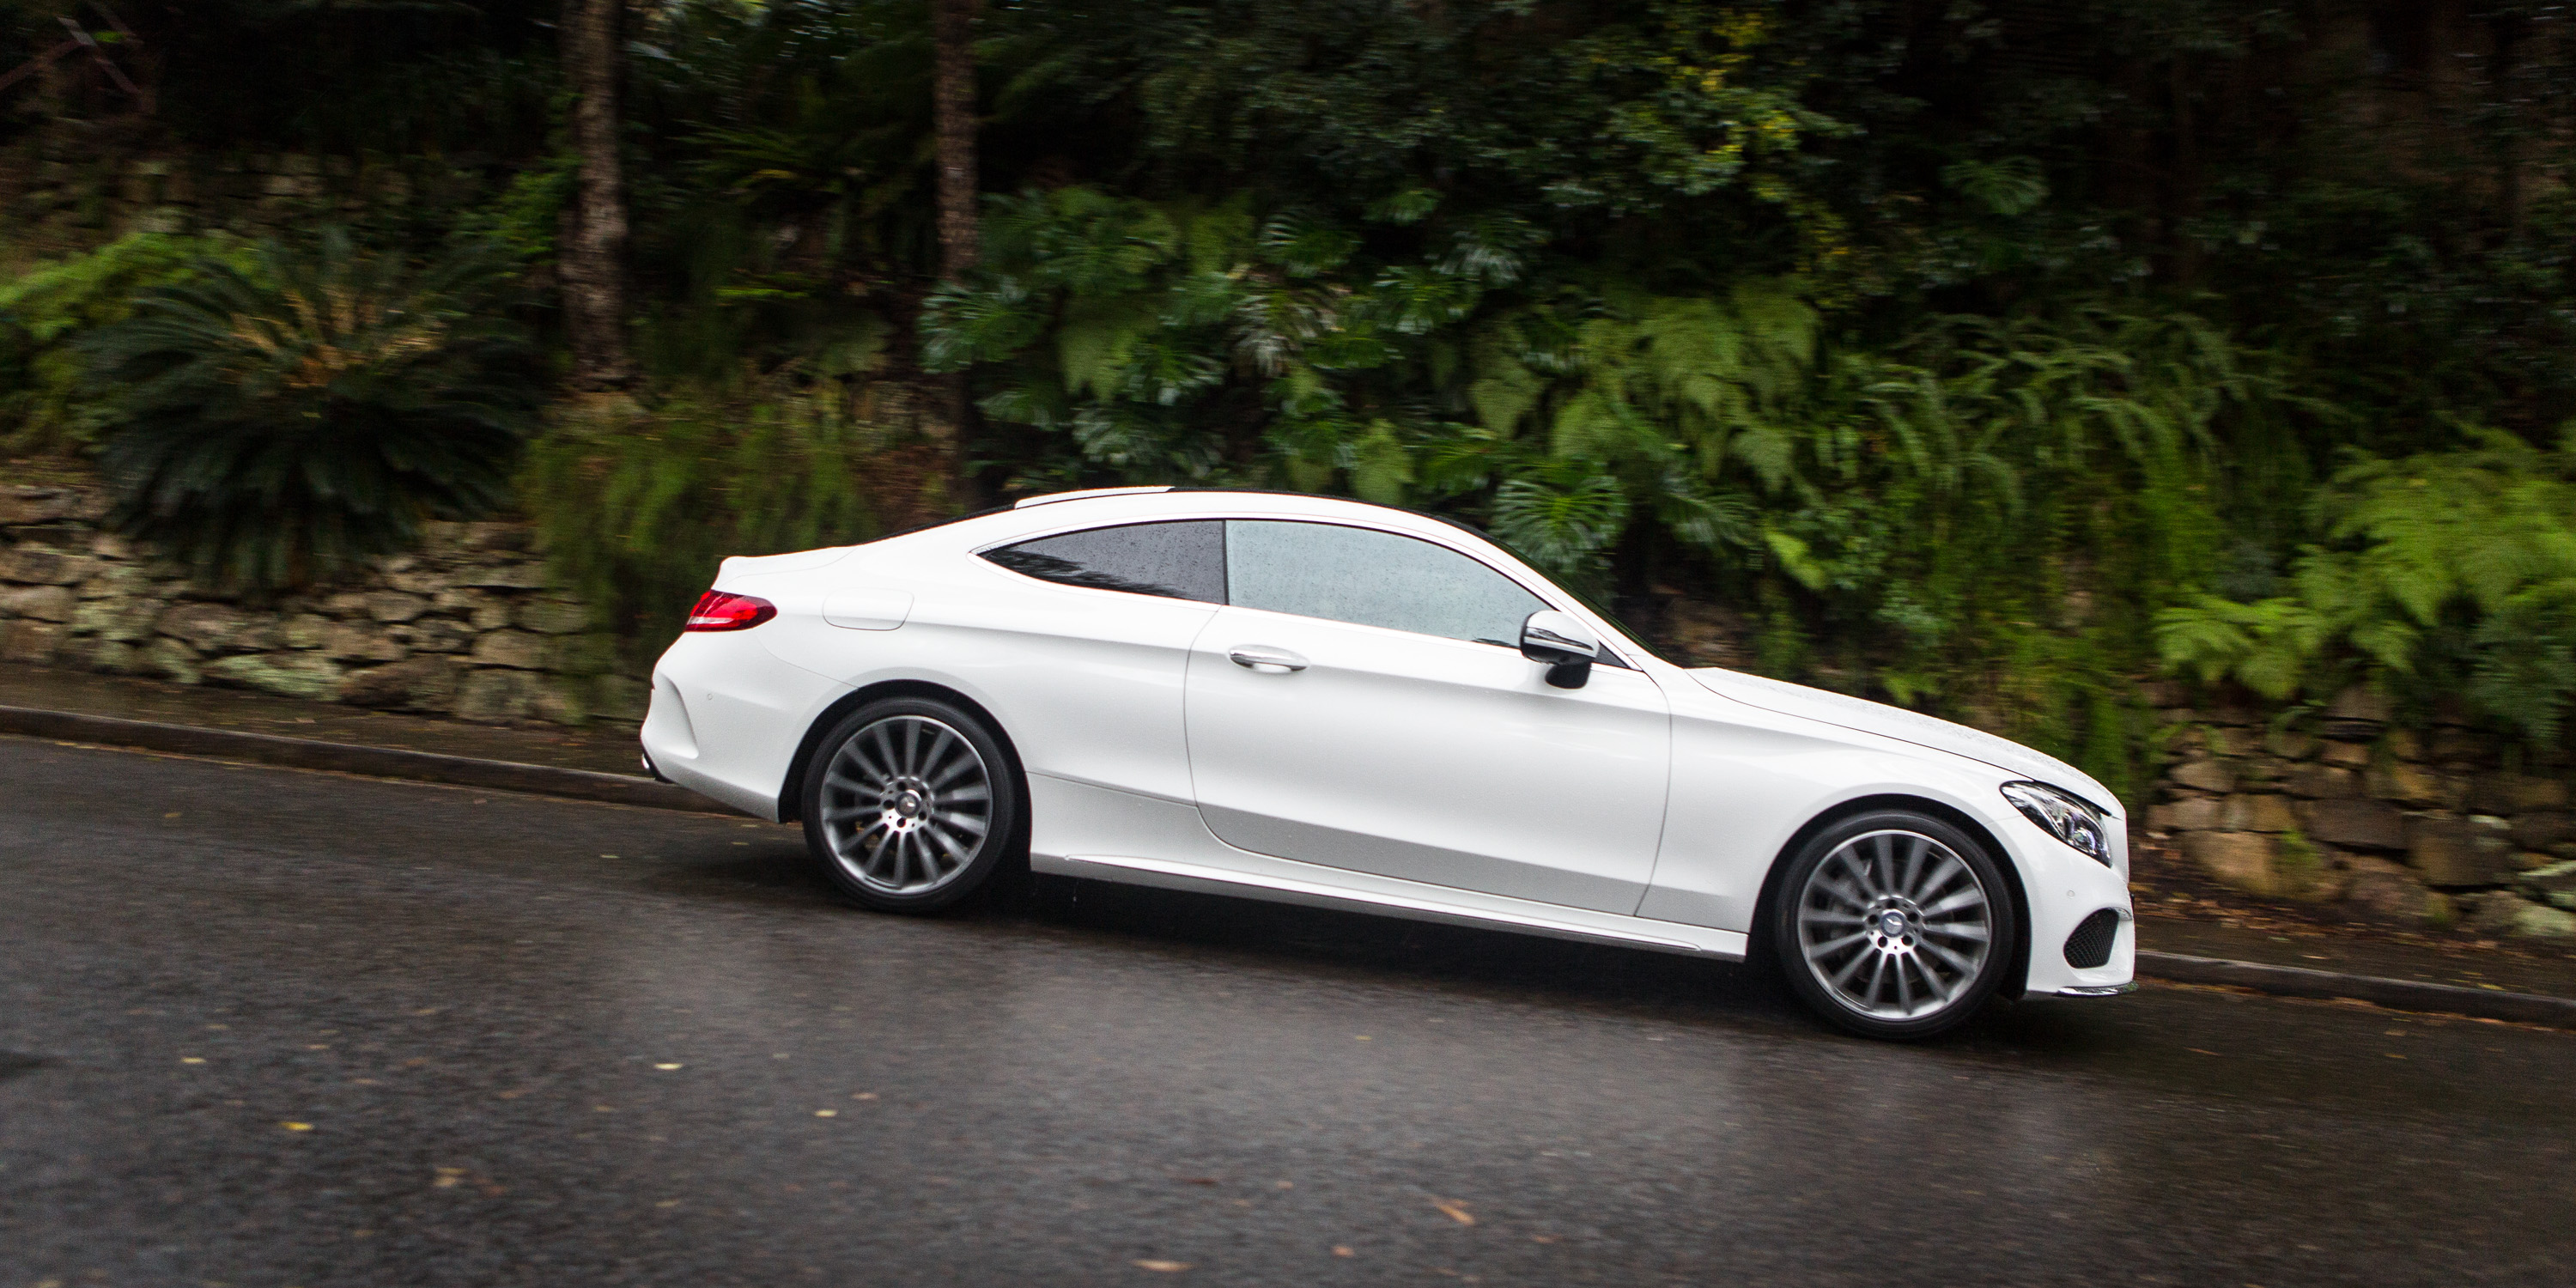 2016 mercedes benz c300 coupe long term report one for Mercedes benz long